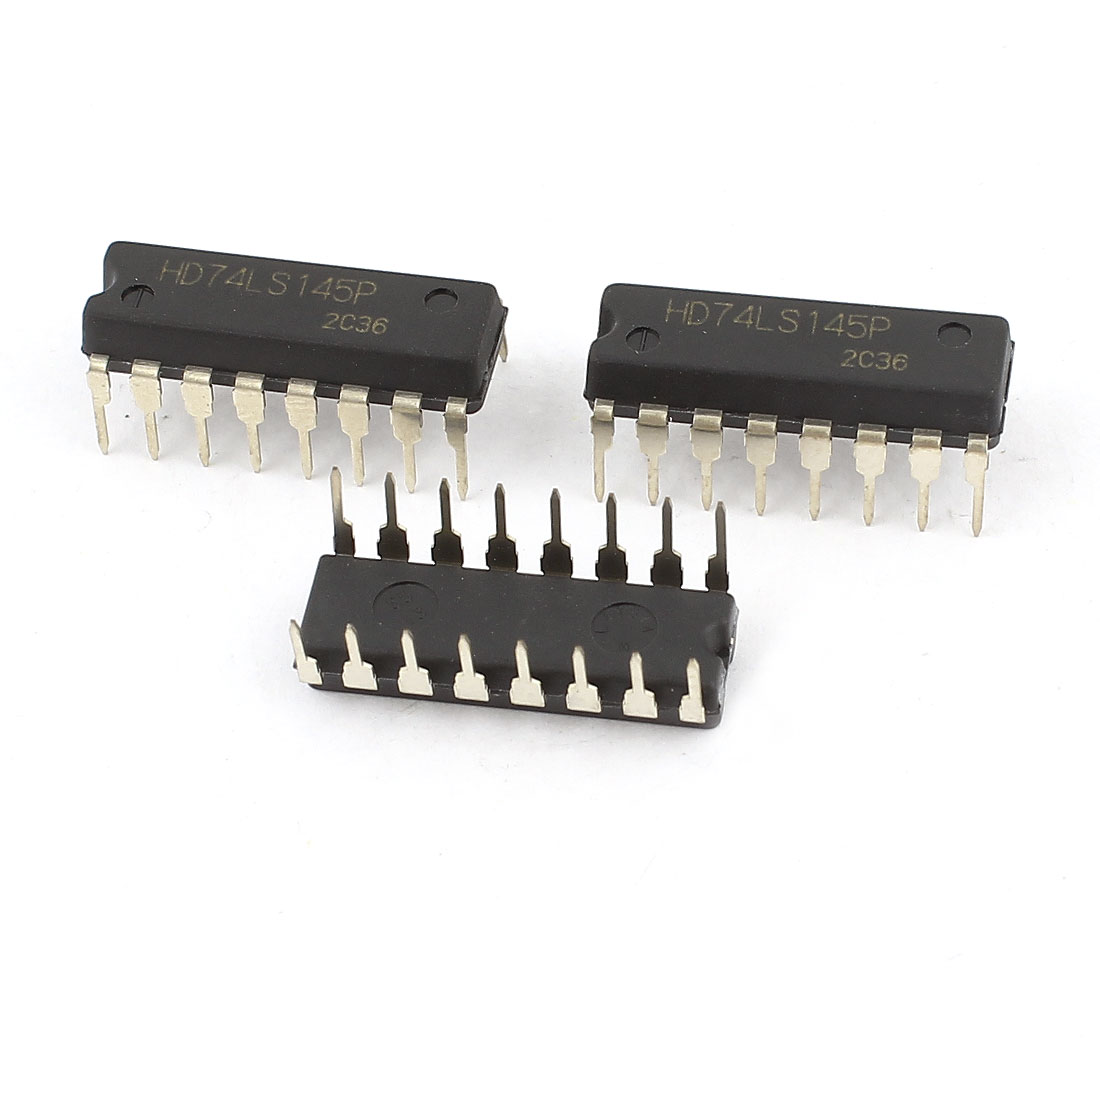 3Pcs Black BCD to Decimal Decoders Drivers DIP-16 IC HD74LS145P